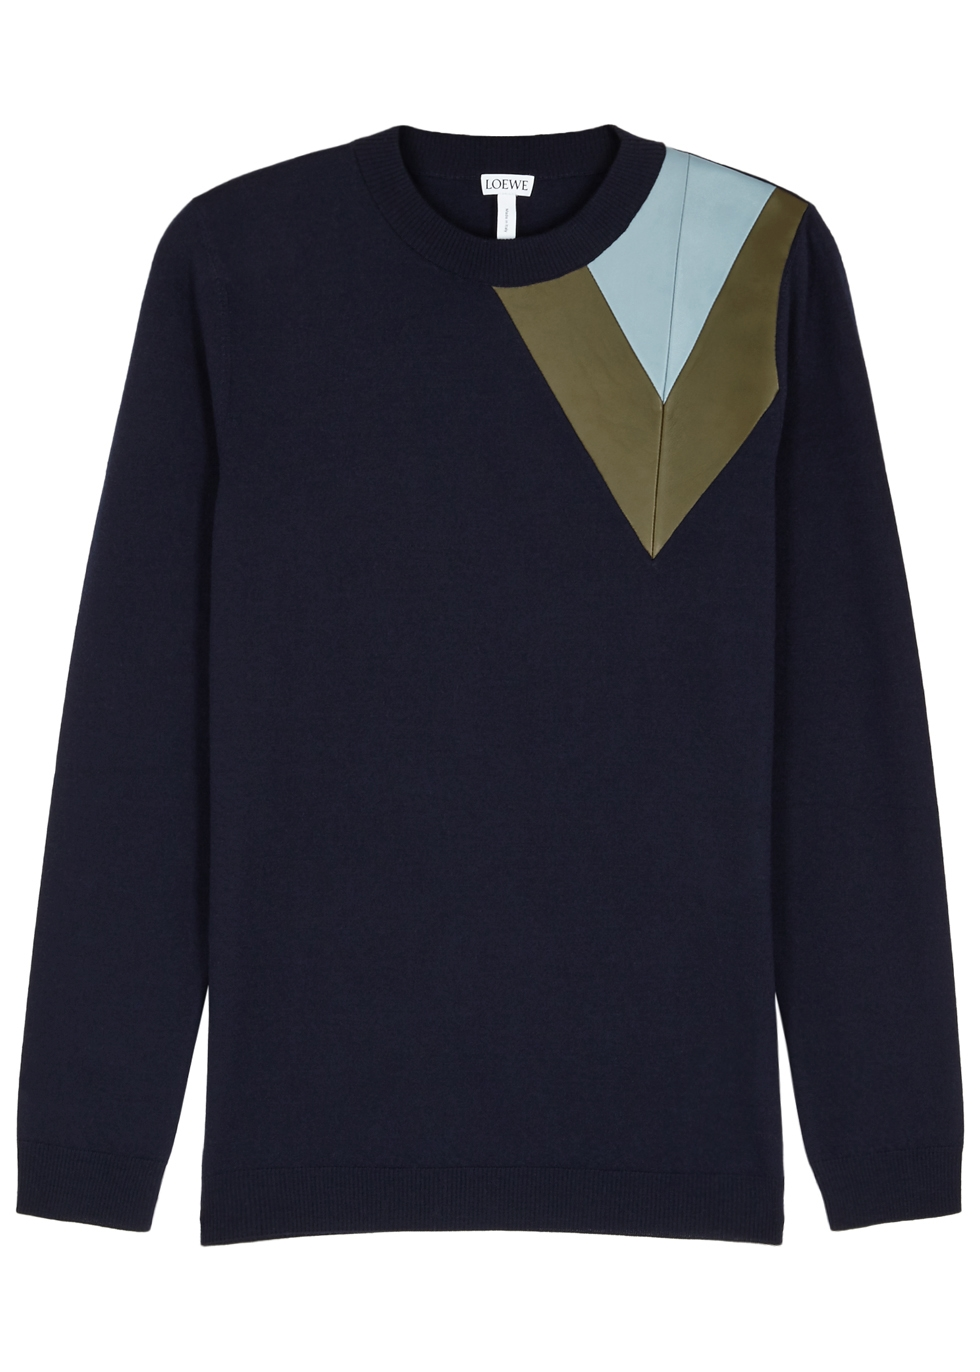 LEATHER CHEVRON SHOULDER WOOL SWEATER